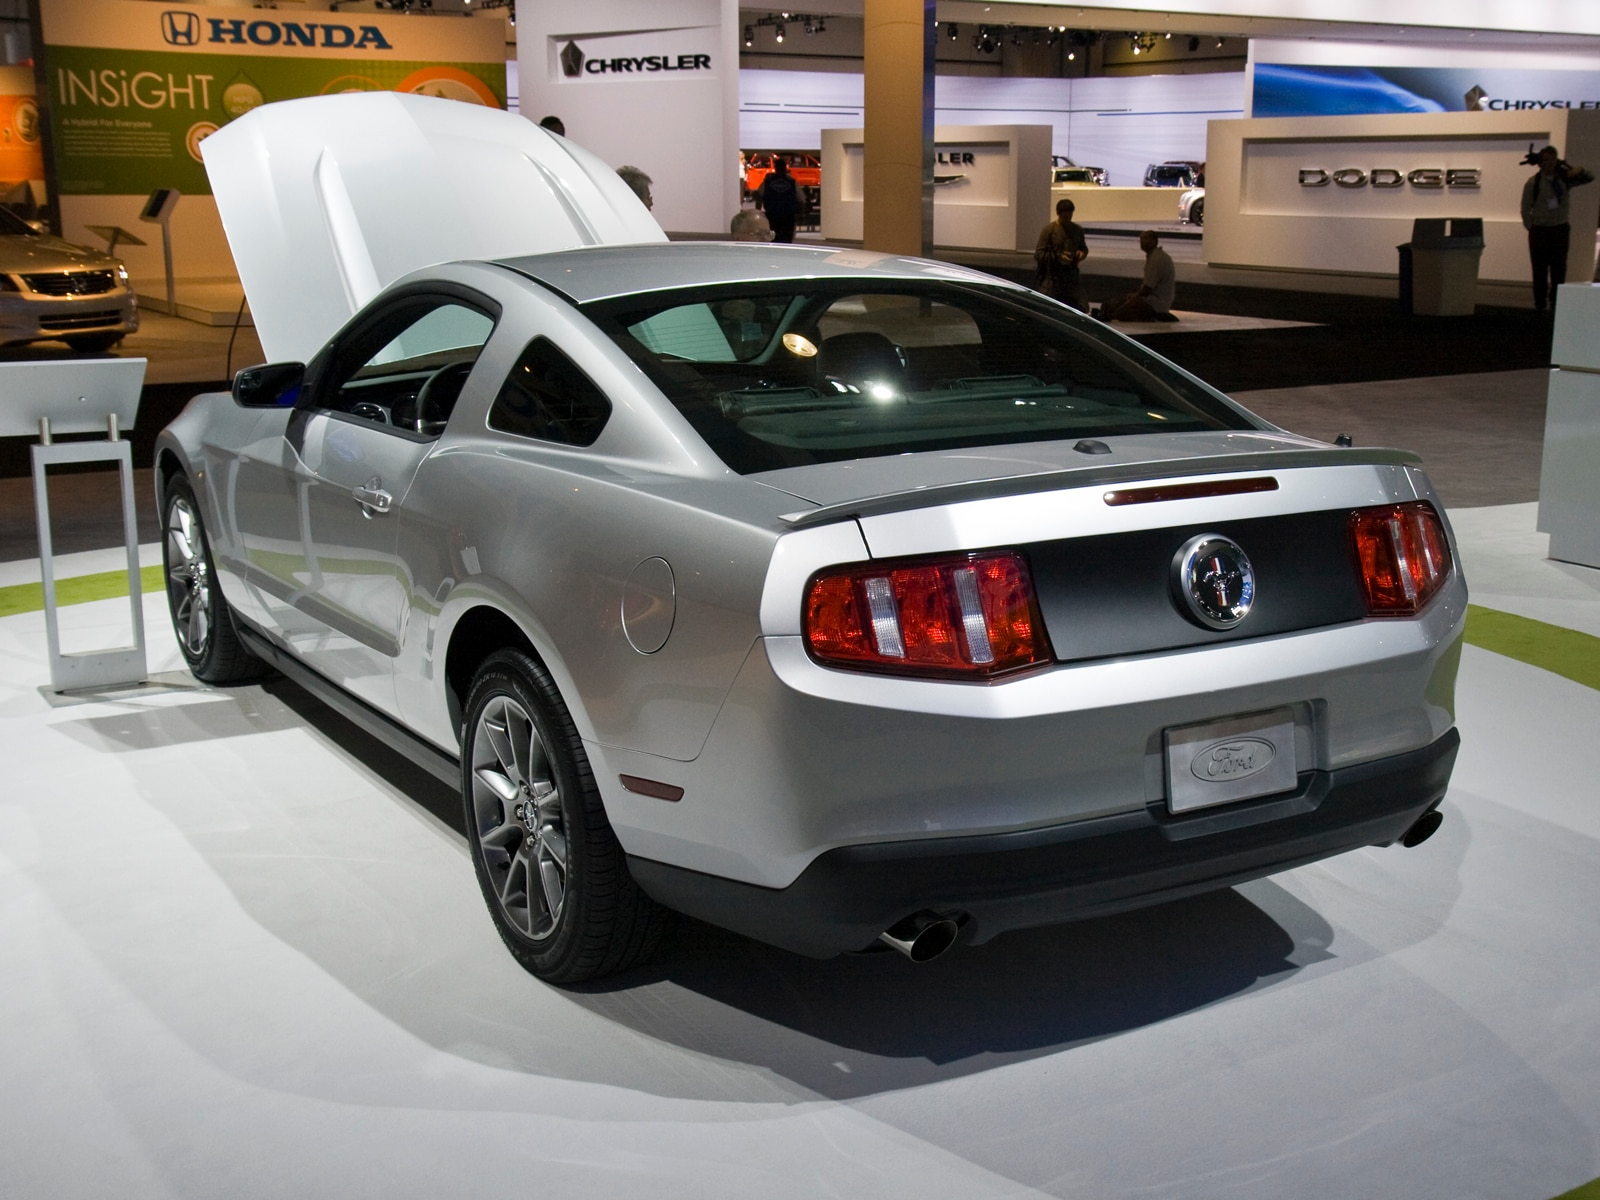 0912 05 Z 2011 Ford Mustang V6 Rear Three Quarters View